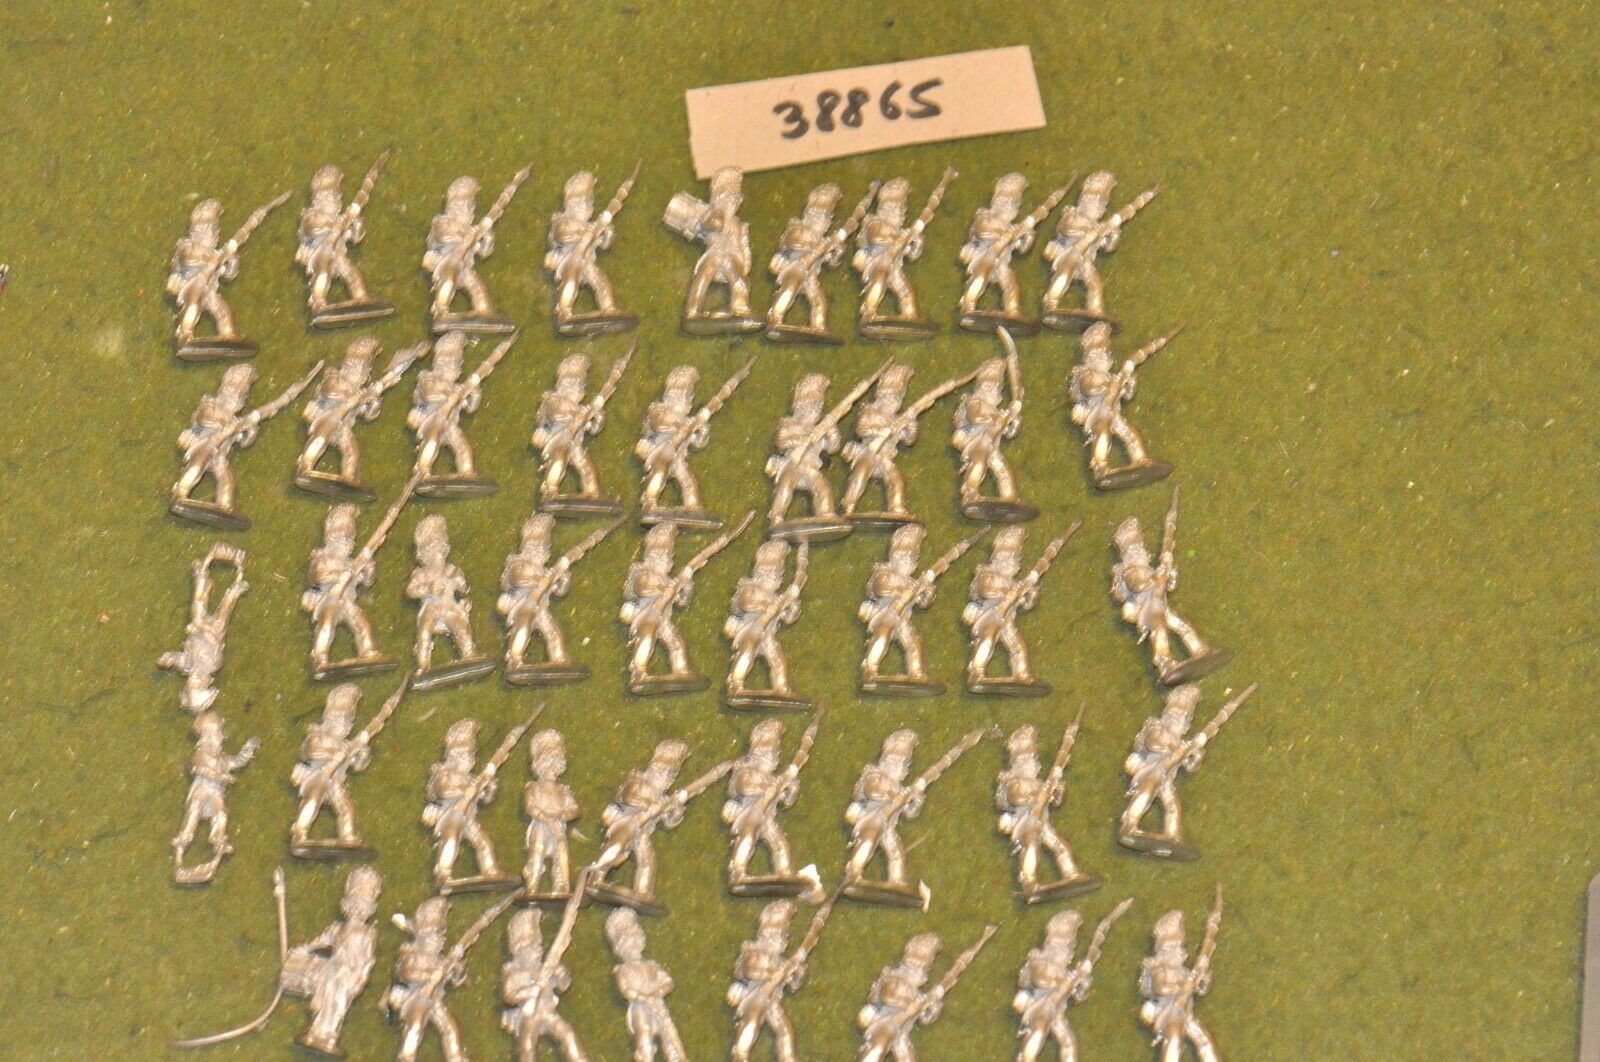 25mm napoleonic   french - old guard unpainted 44 figures - inf (38865)